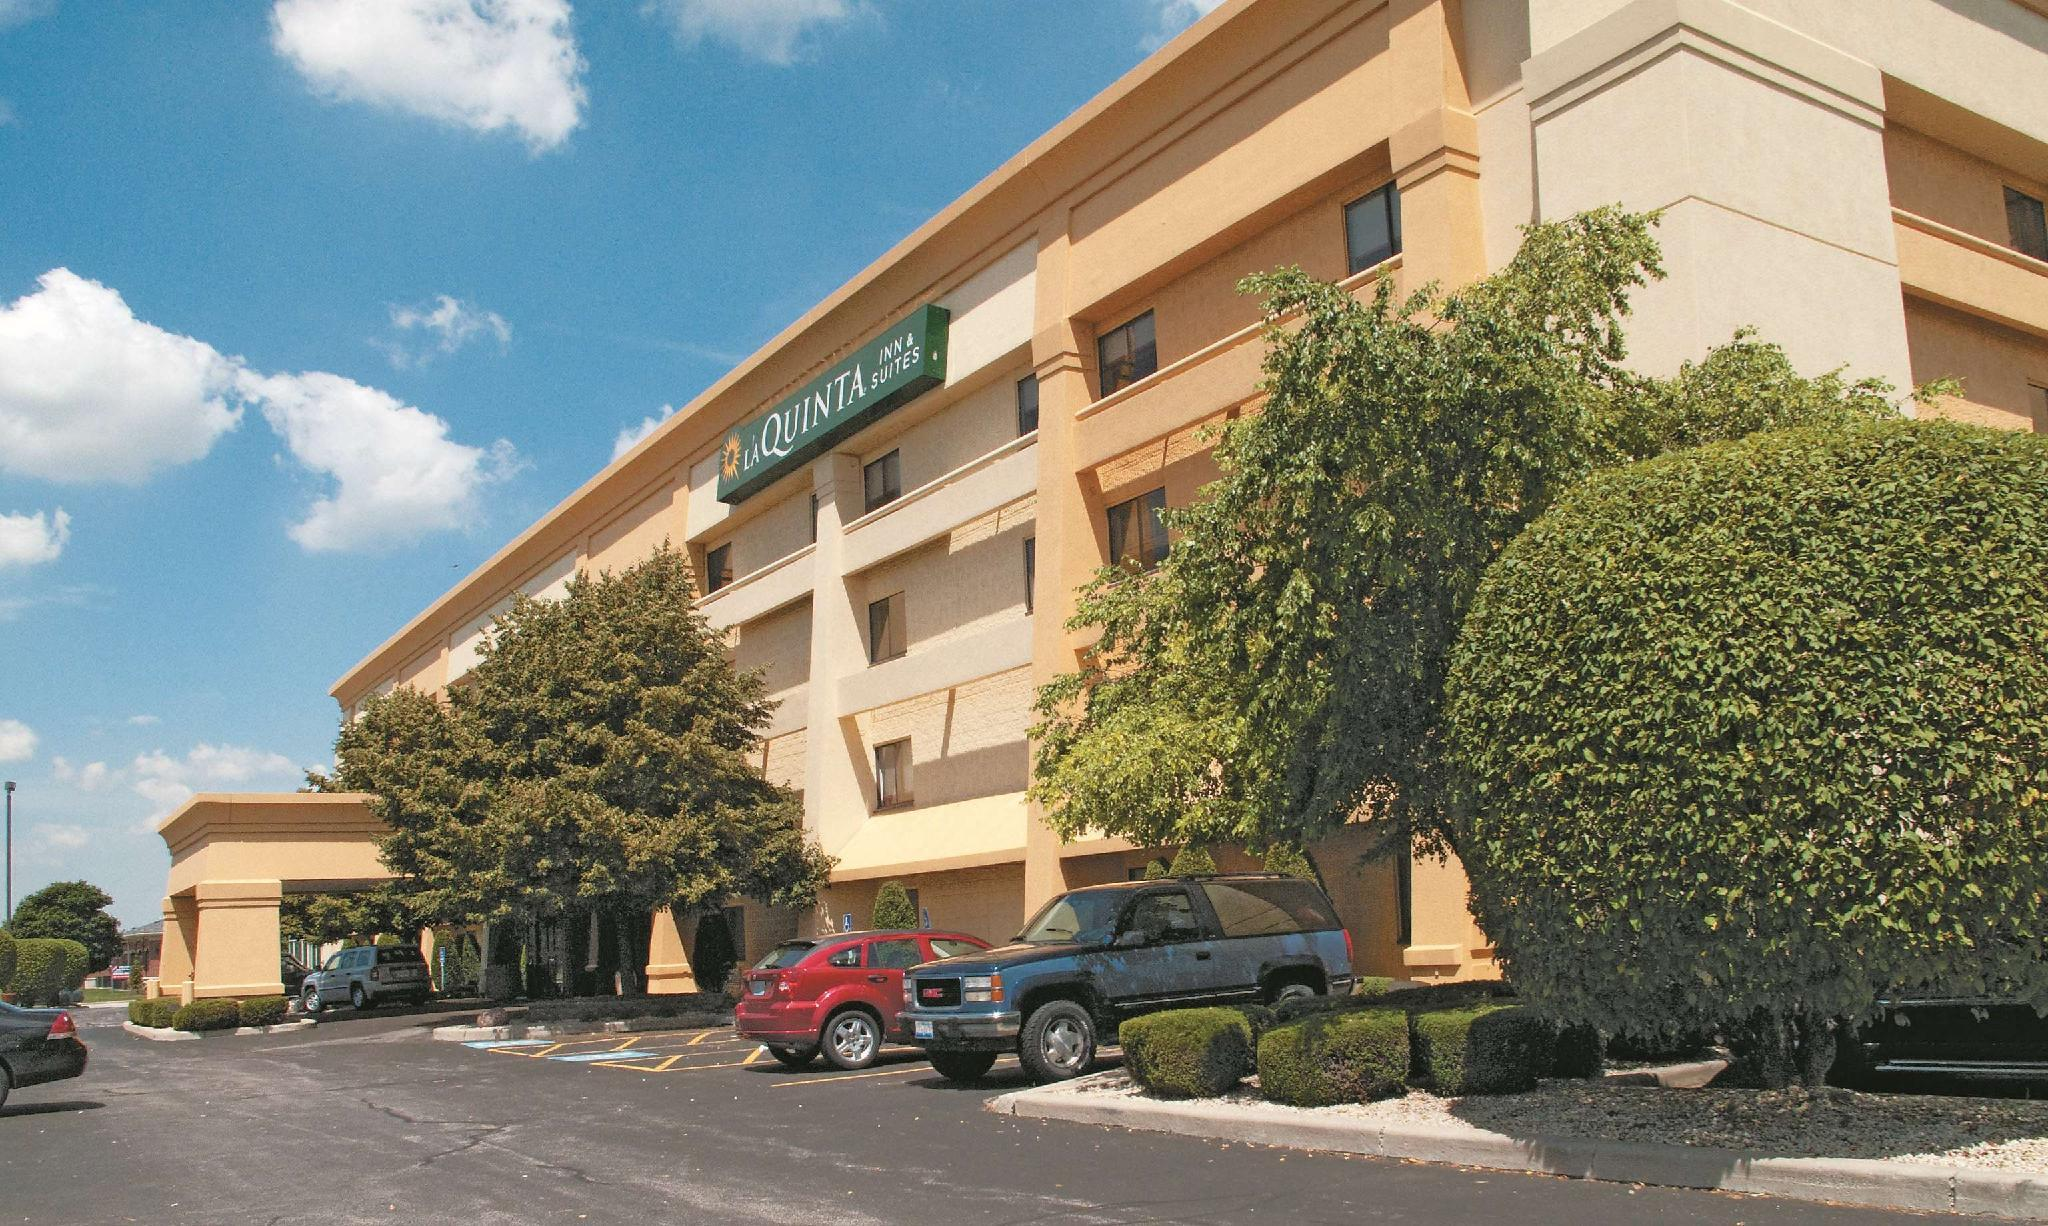 La Quinta Inn And Suites By Wyndham Chicago Tinley Park